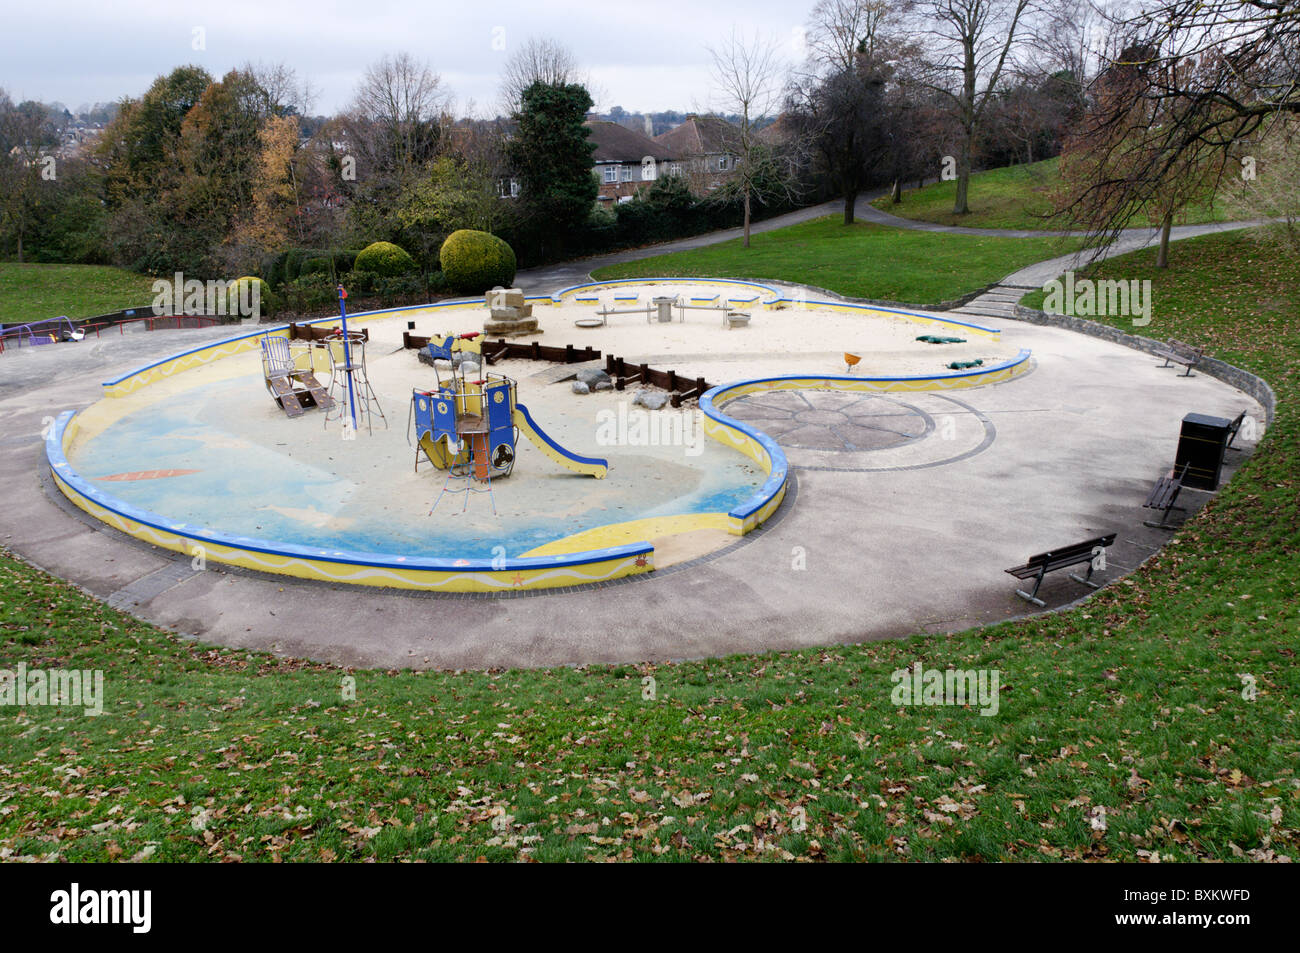 An empty and unused children's playground in a suburban park on a winter's day. - Stock Image